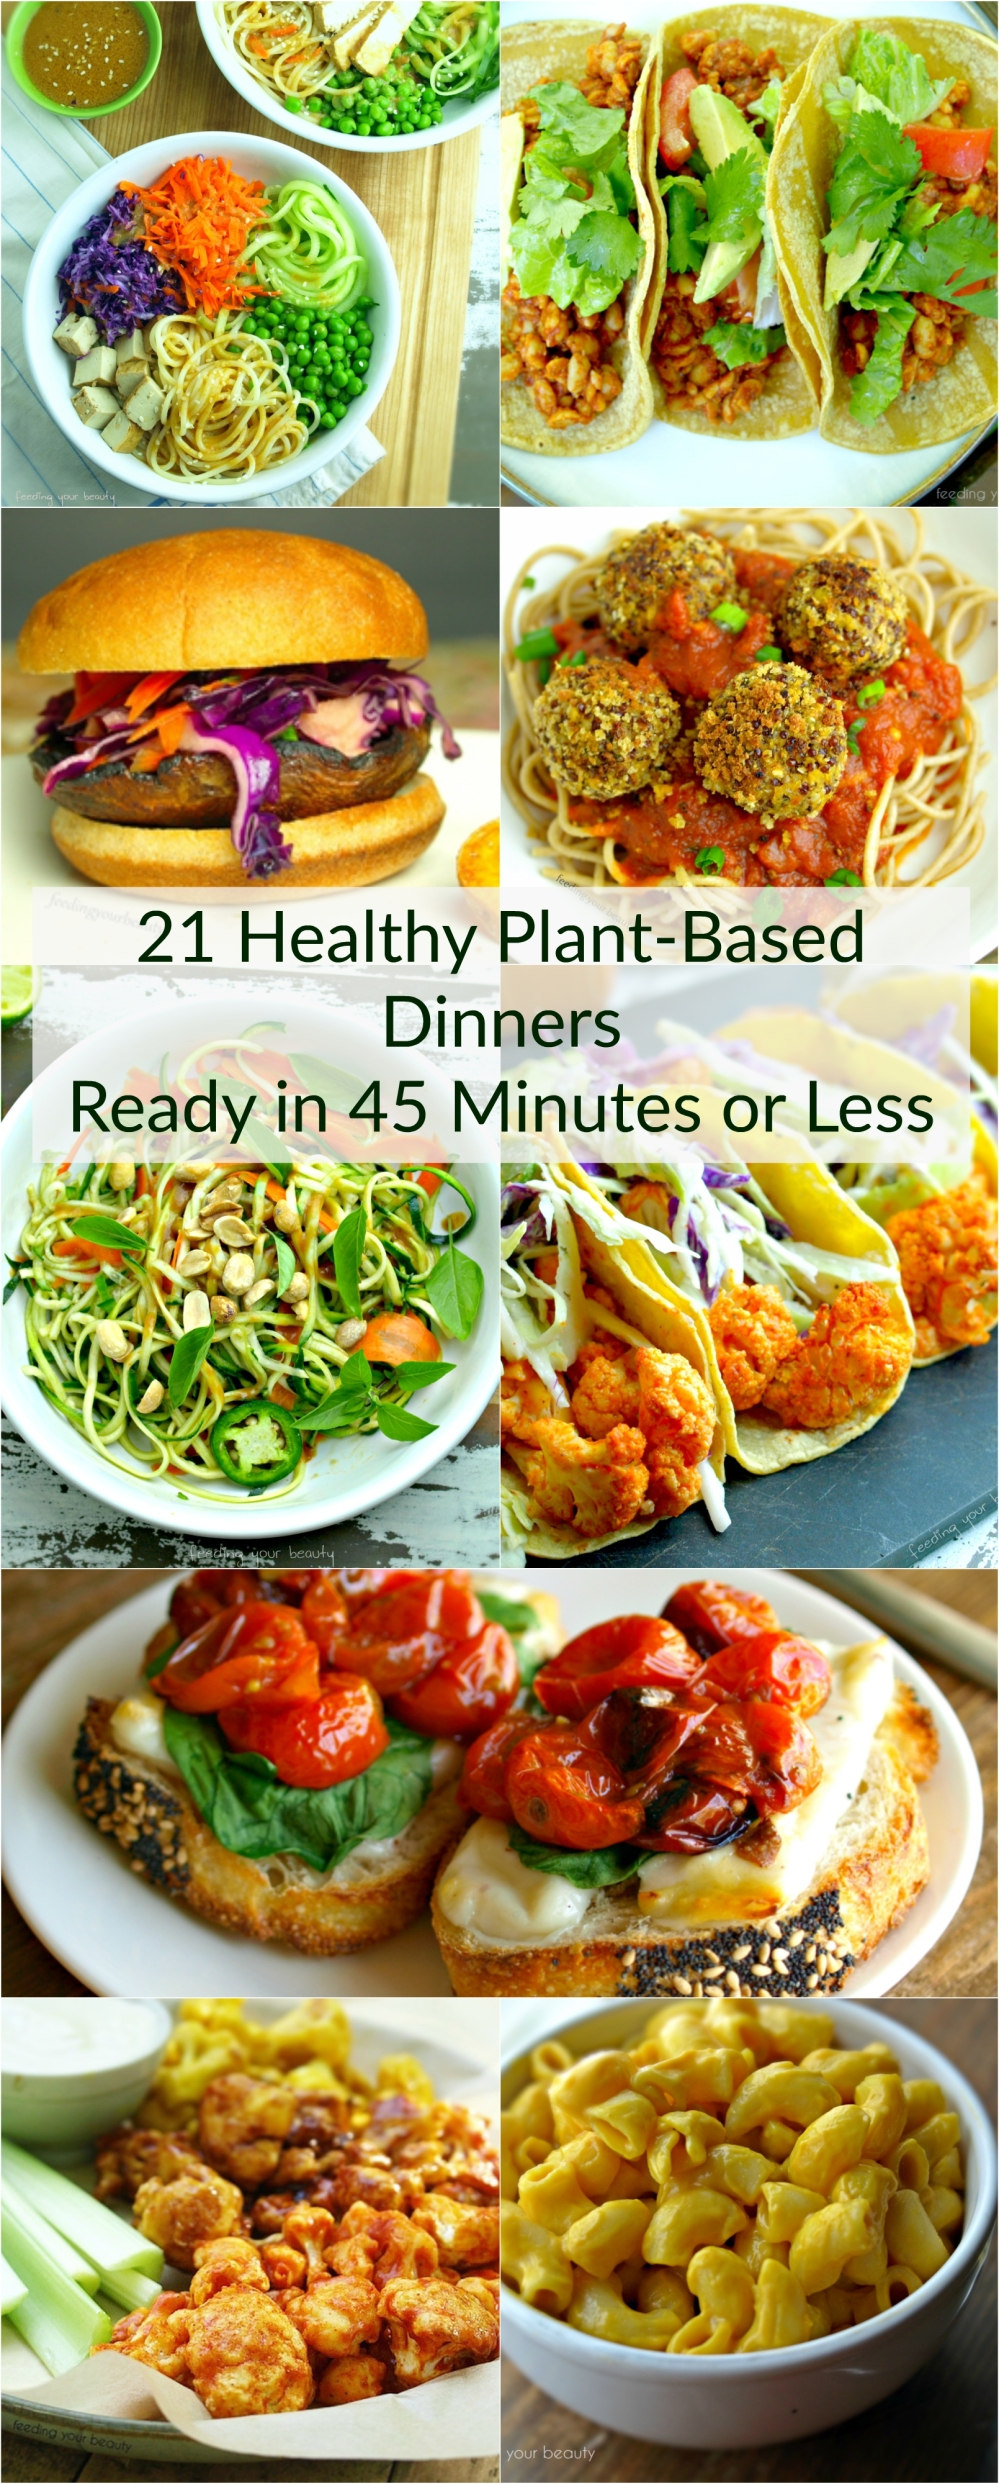 21 Healthy Plant-Based Dinners Ready in 45 Minutes or Less - Vegan, gluten free, oil free, dairy free, egg free, meatless